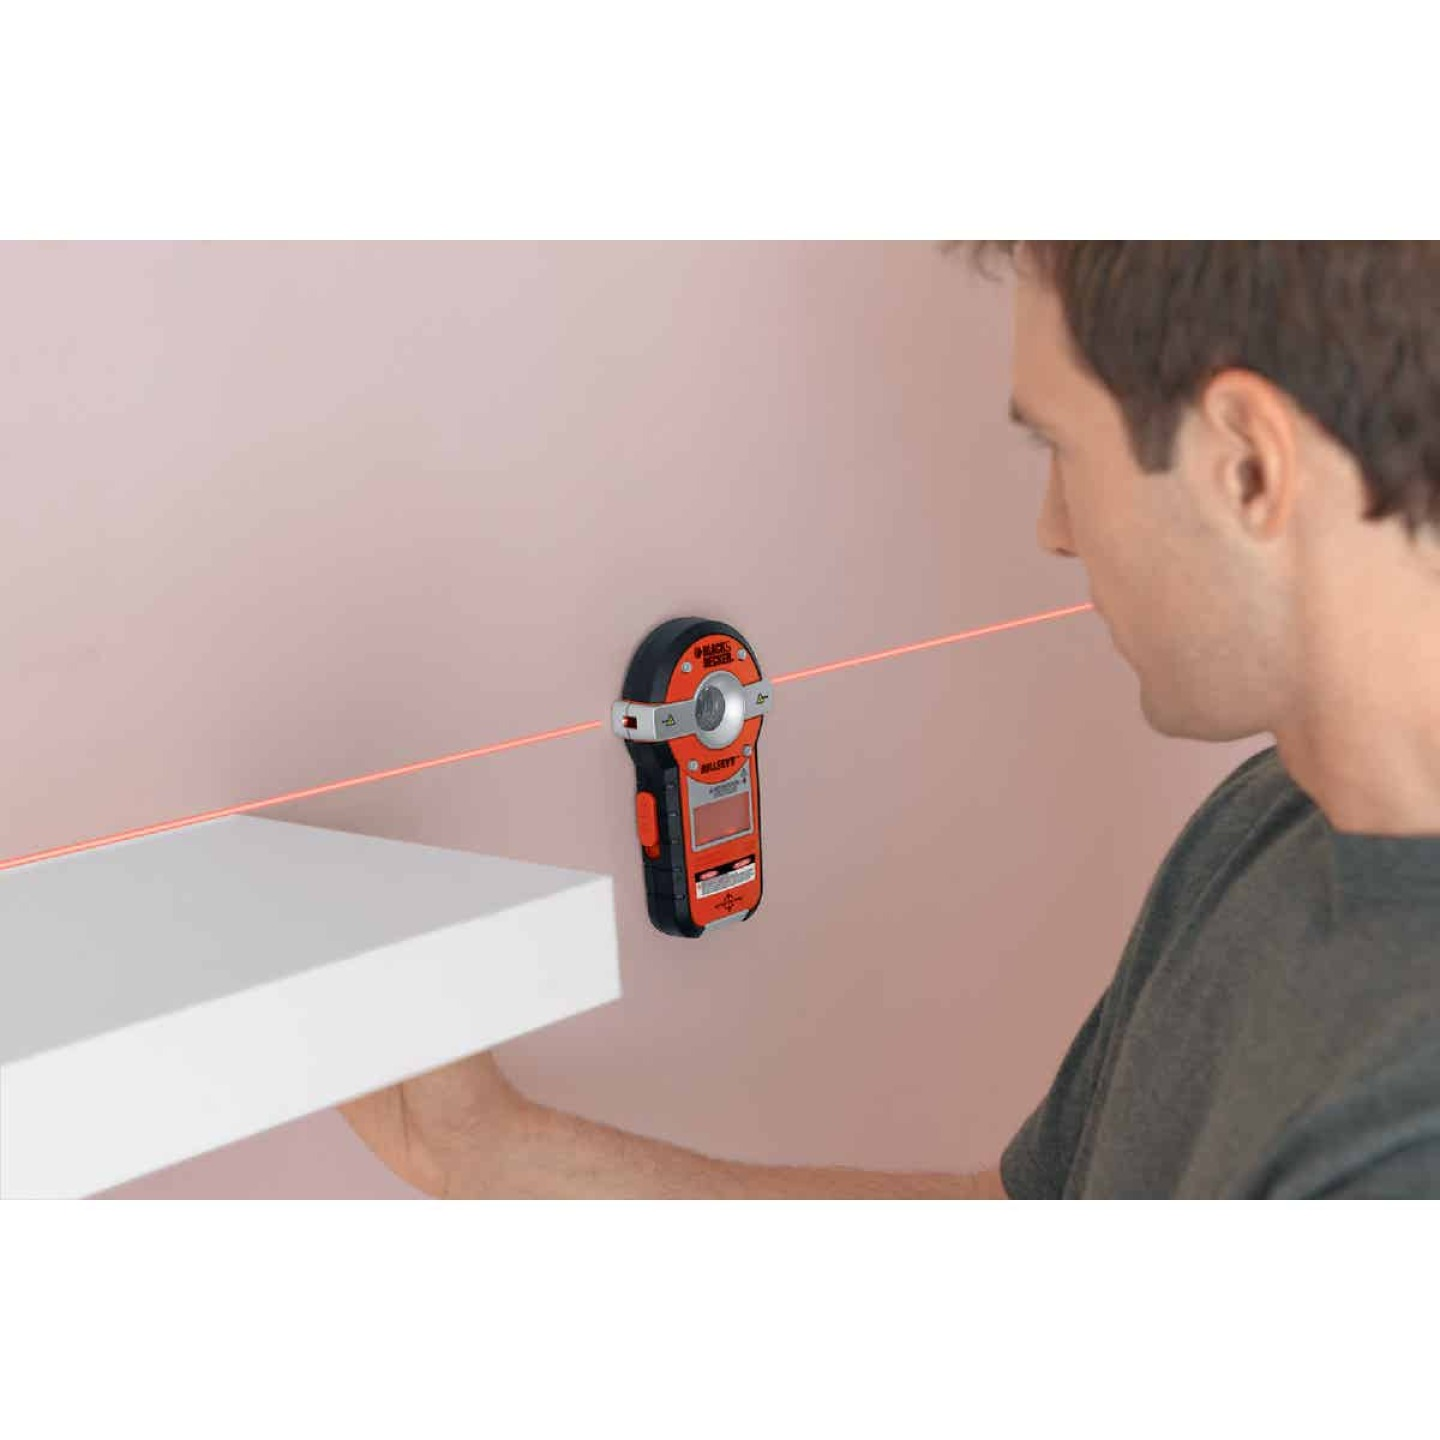 Black & Decker Bullseye 20 Ft. Self-Leveling Line Laser Level with Stud Sensor Image 5